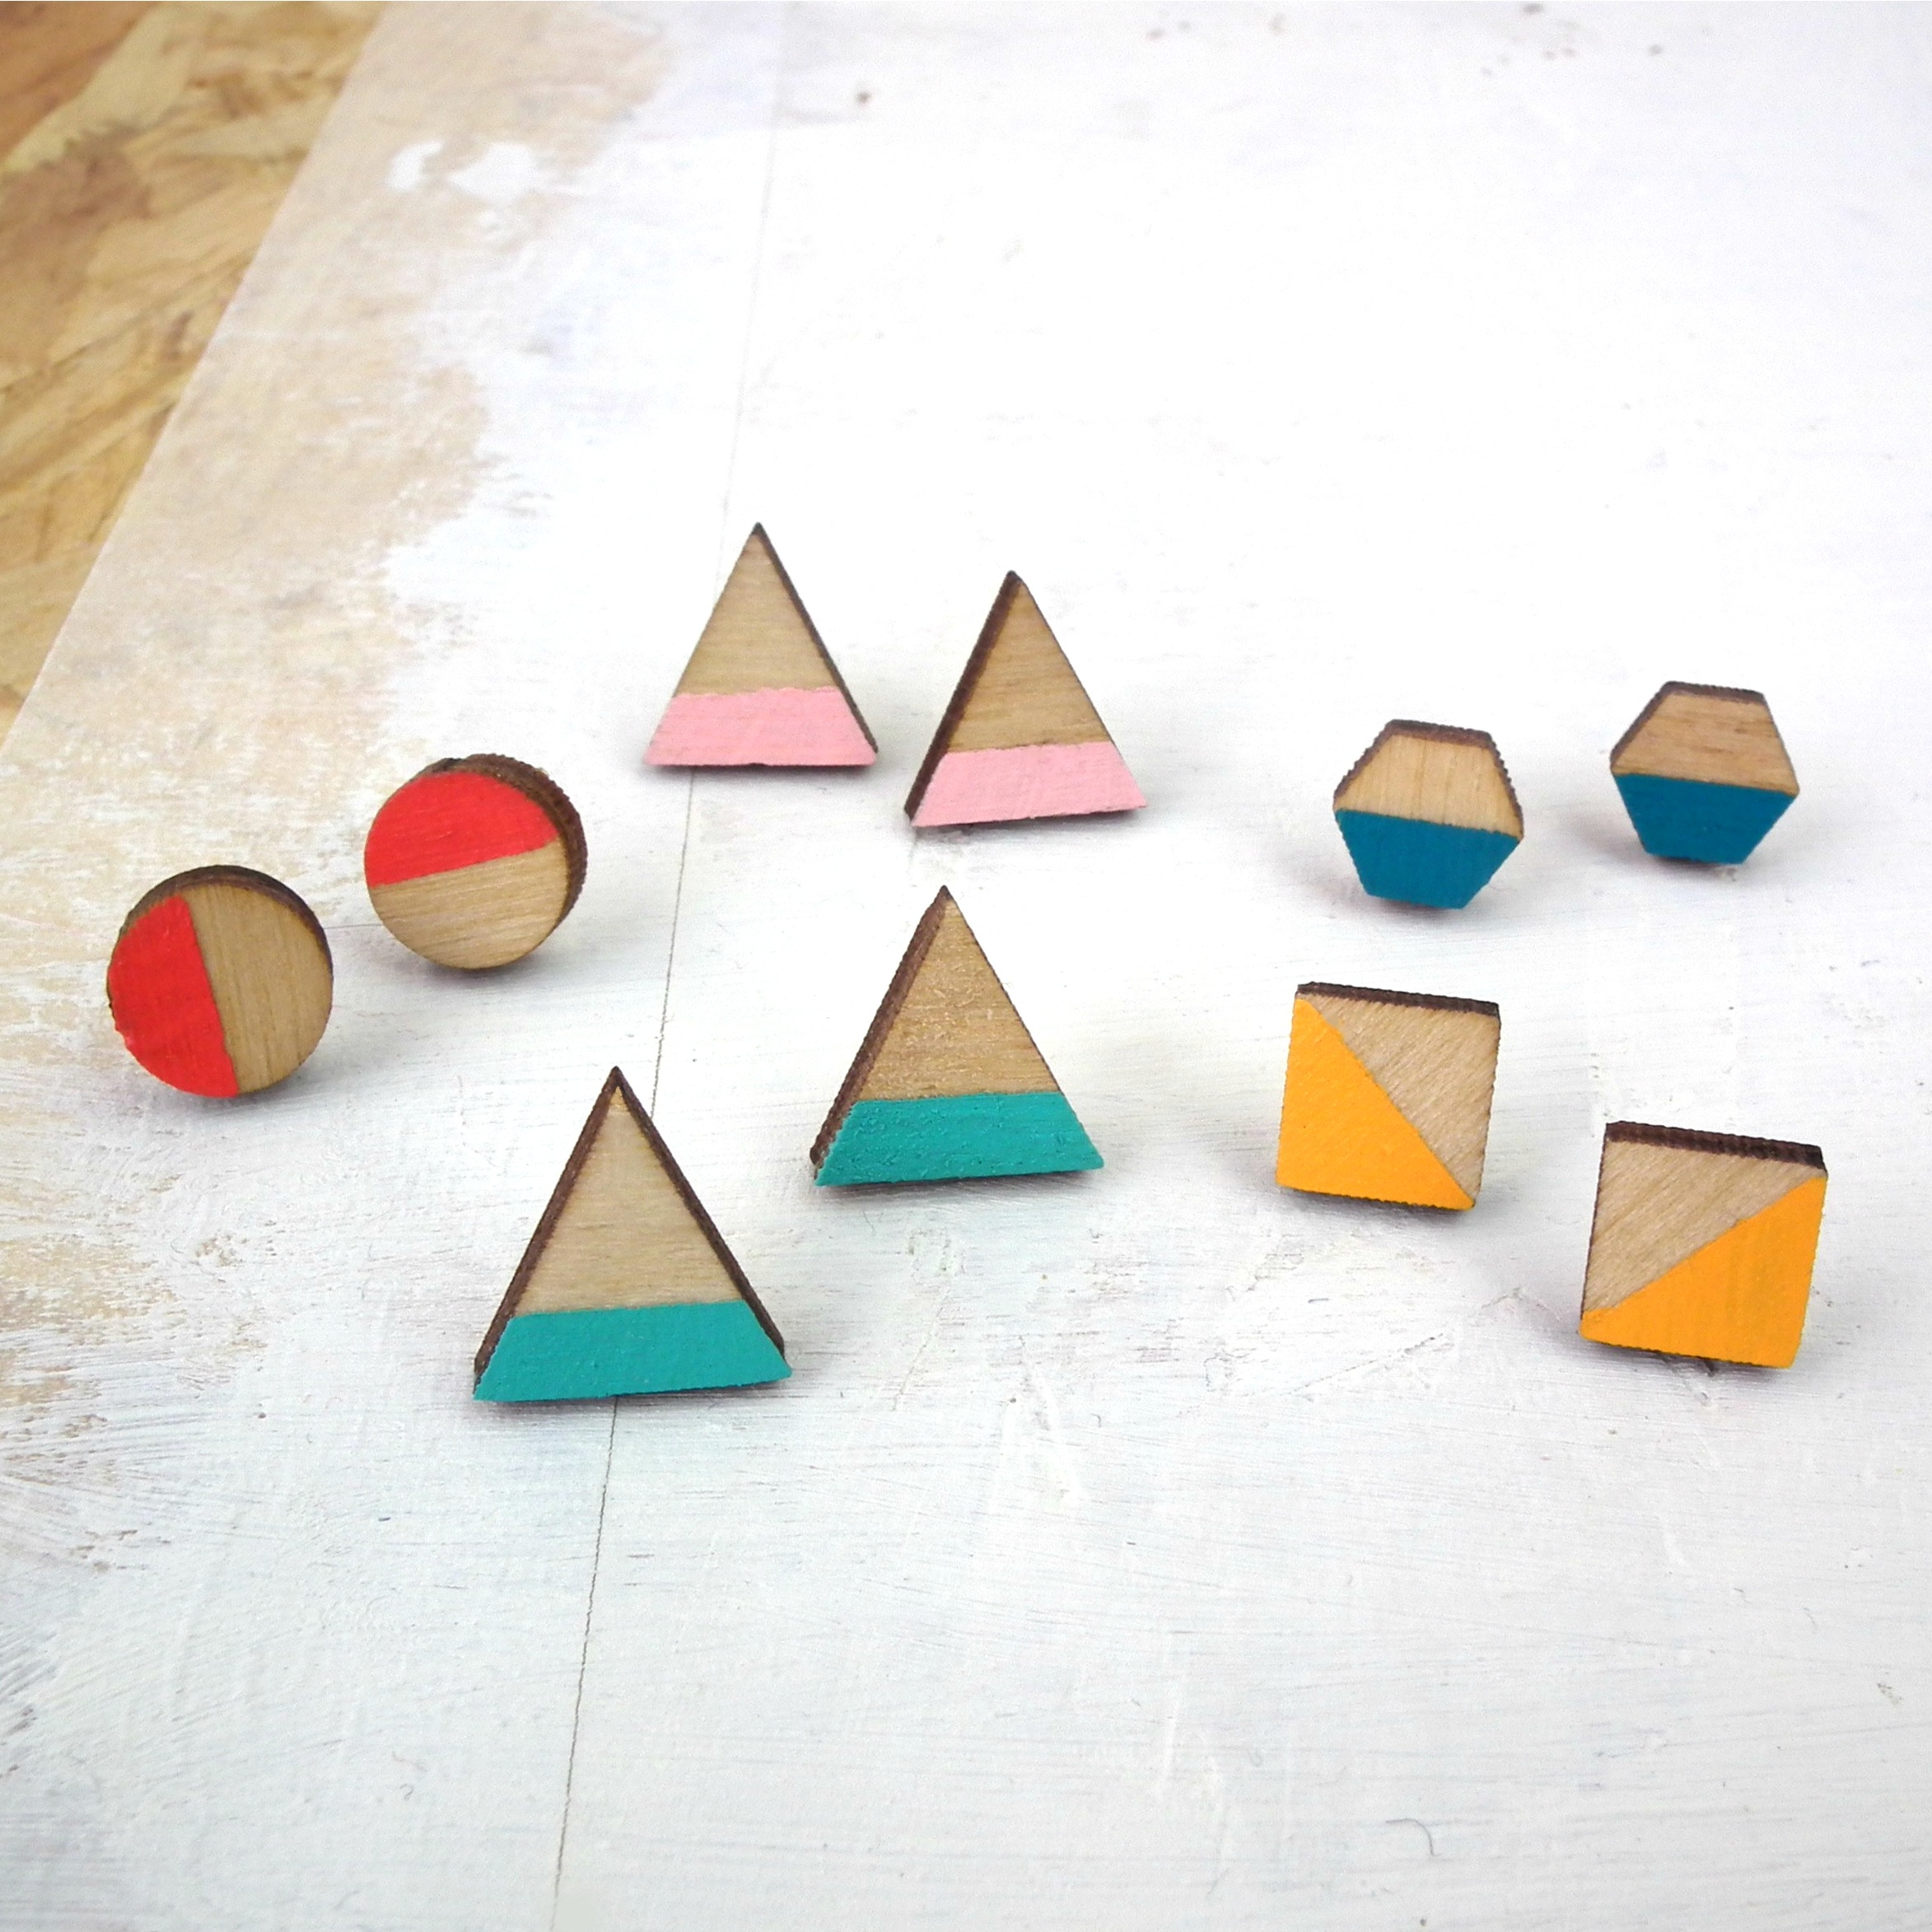 red paper house - Geometric Stud Collection.jpg